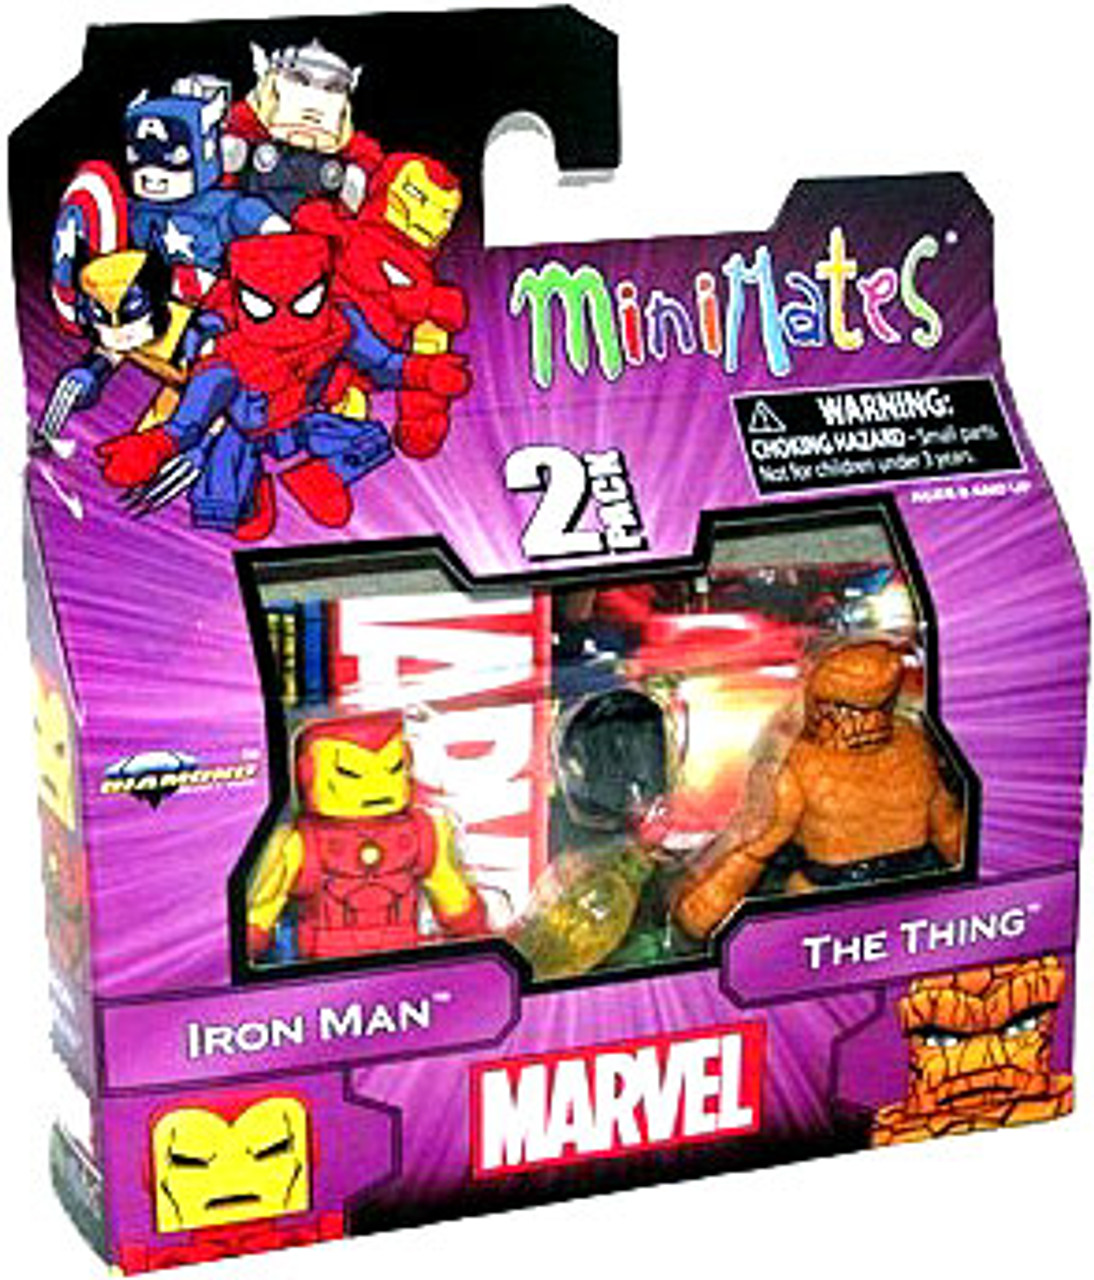 Marvel Minimates Best of Series 1 Iron Man & Thing Minifigure 2-Pack